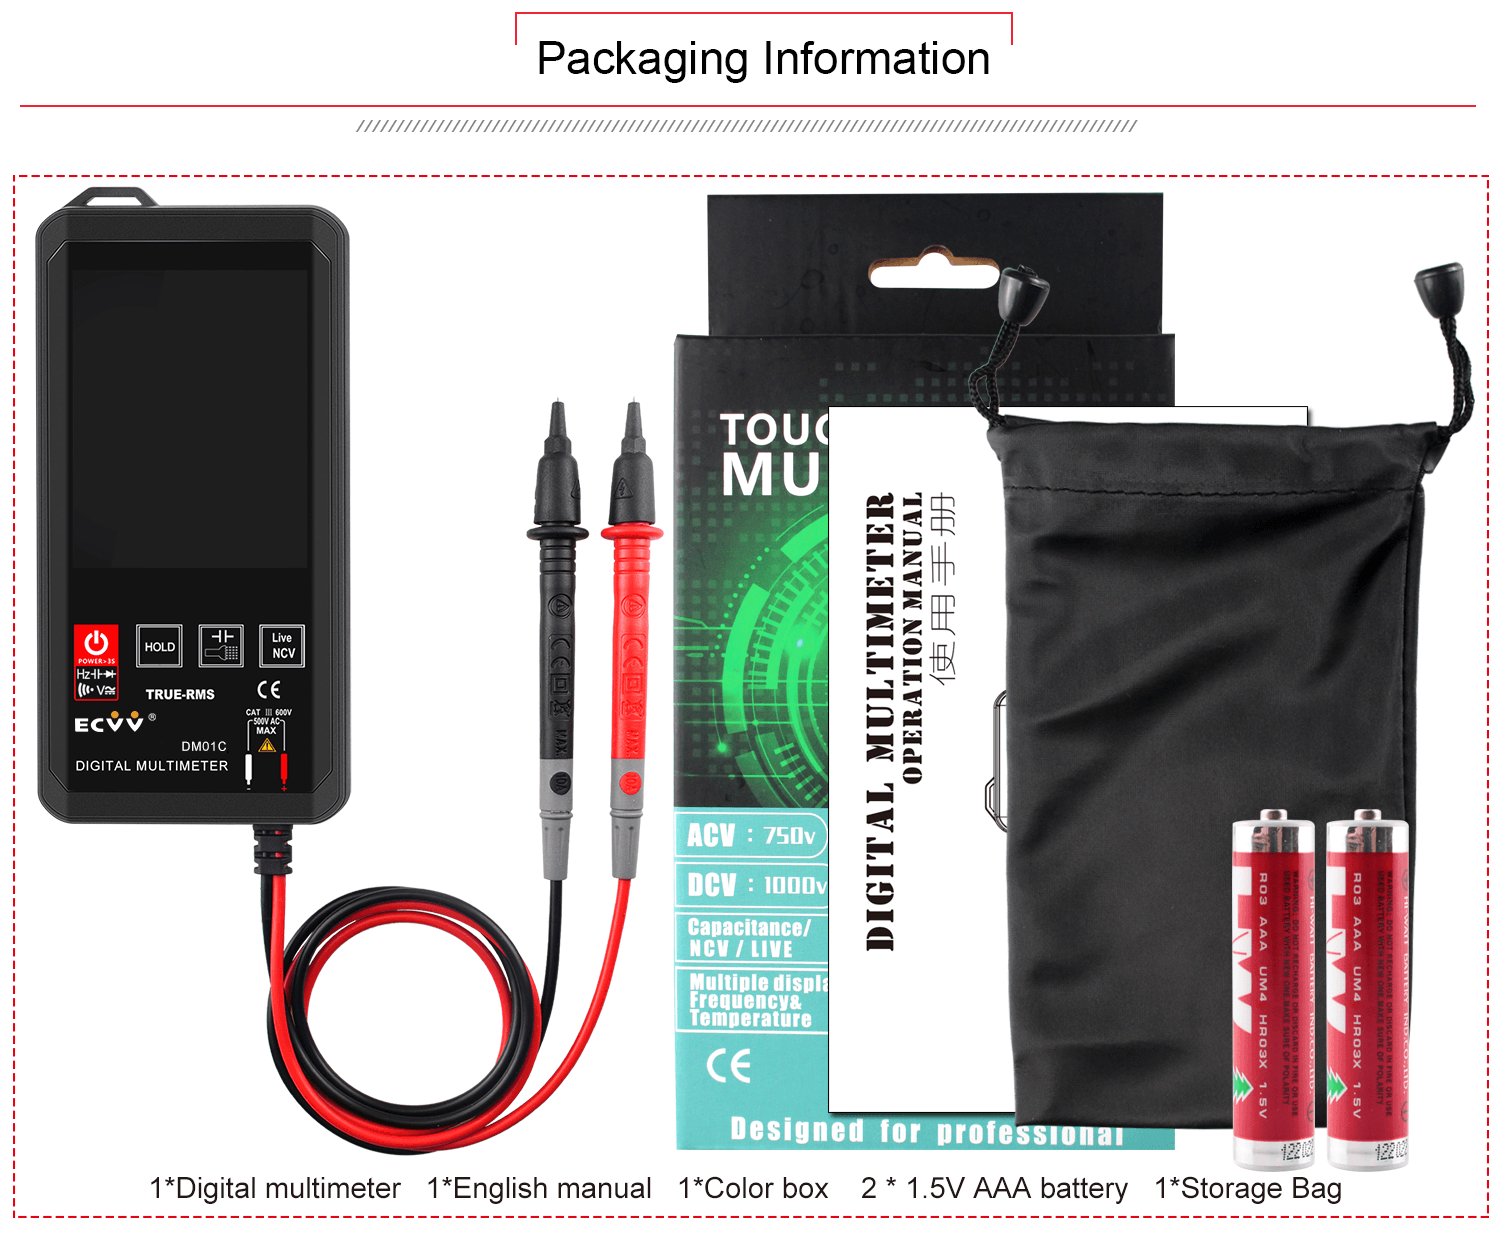 ECVV Touch Screen Digital Multimeter Color Display Auto Recognition-14